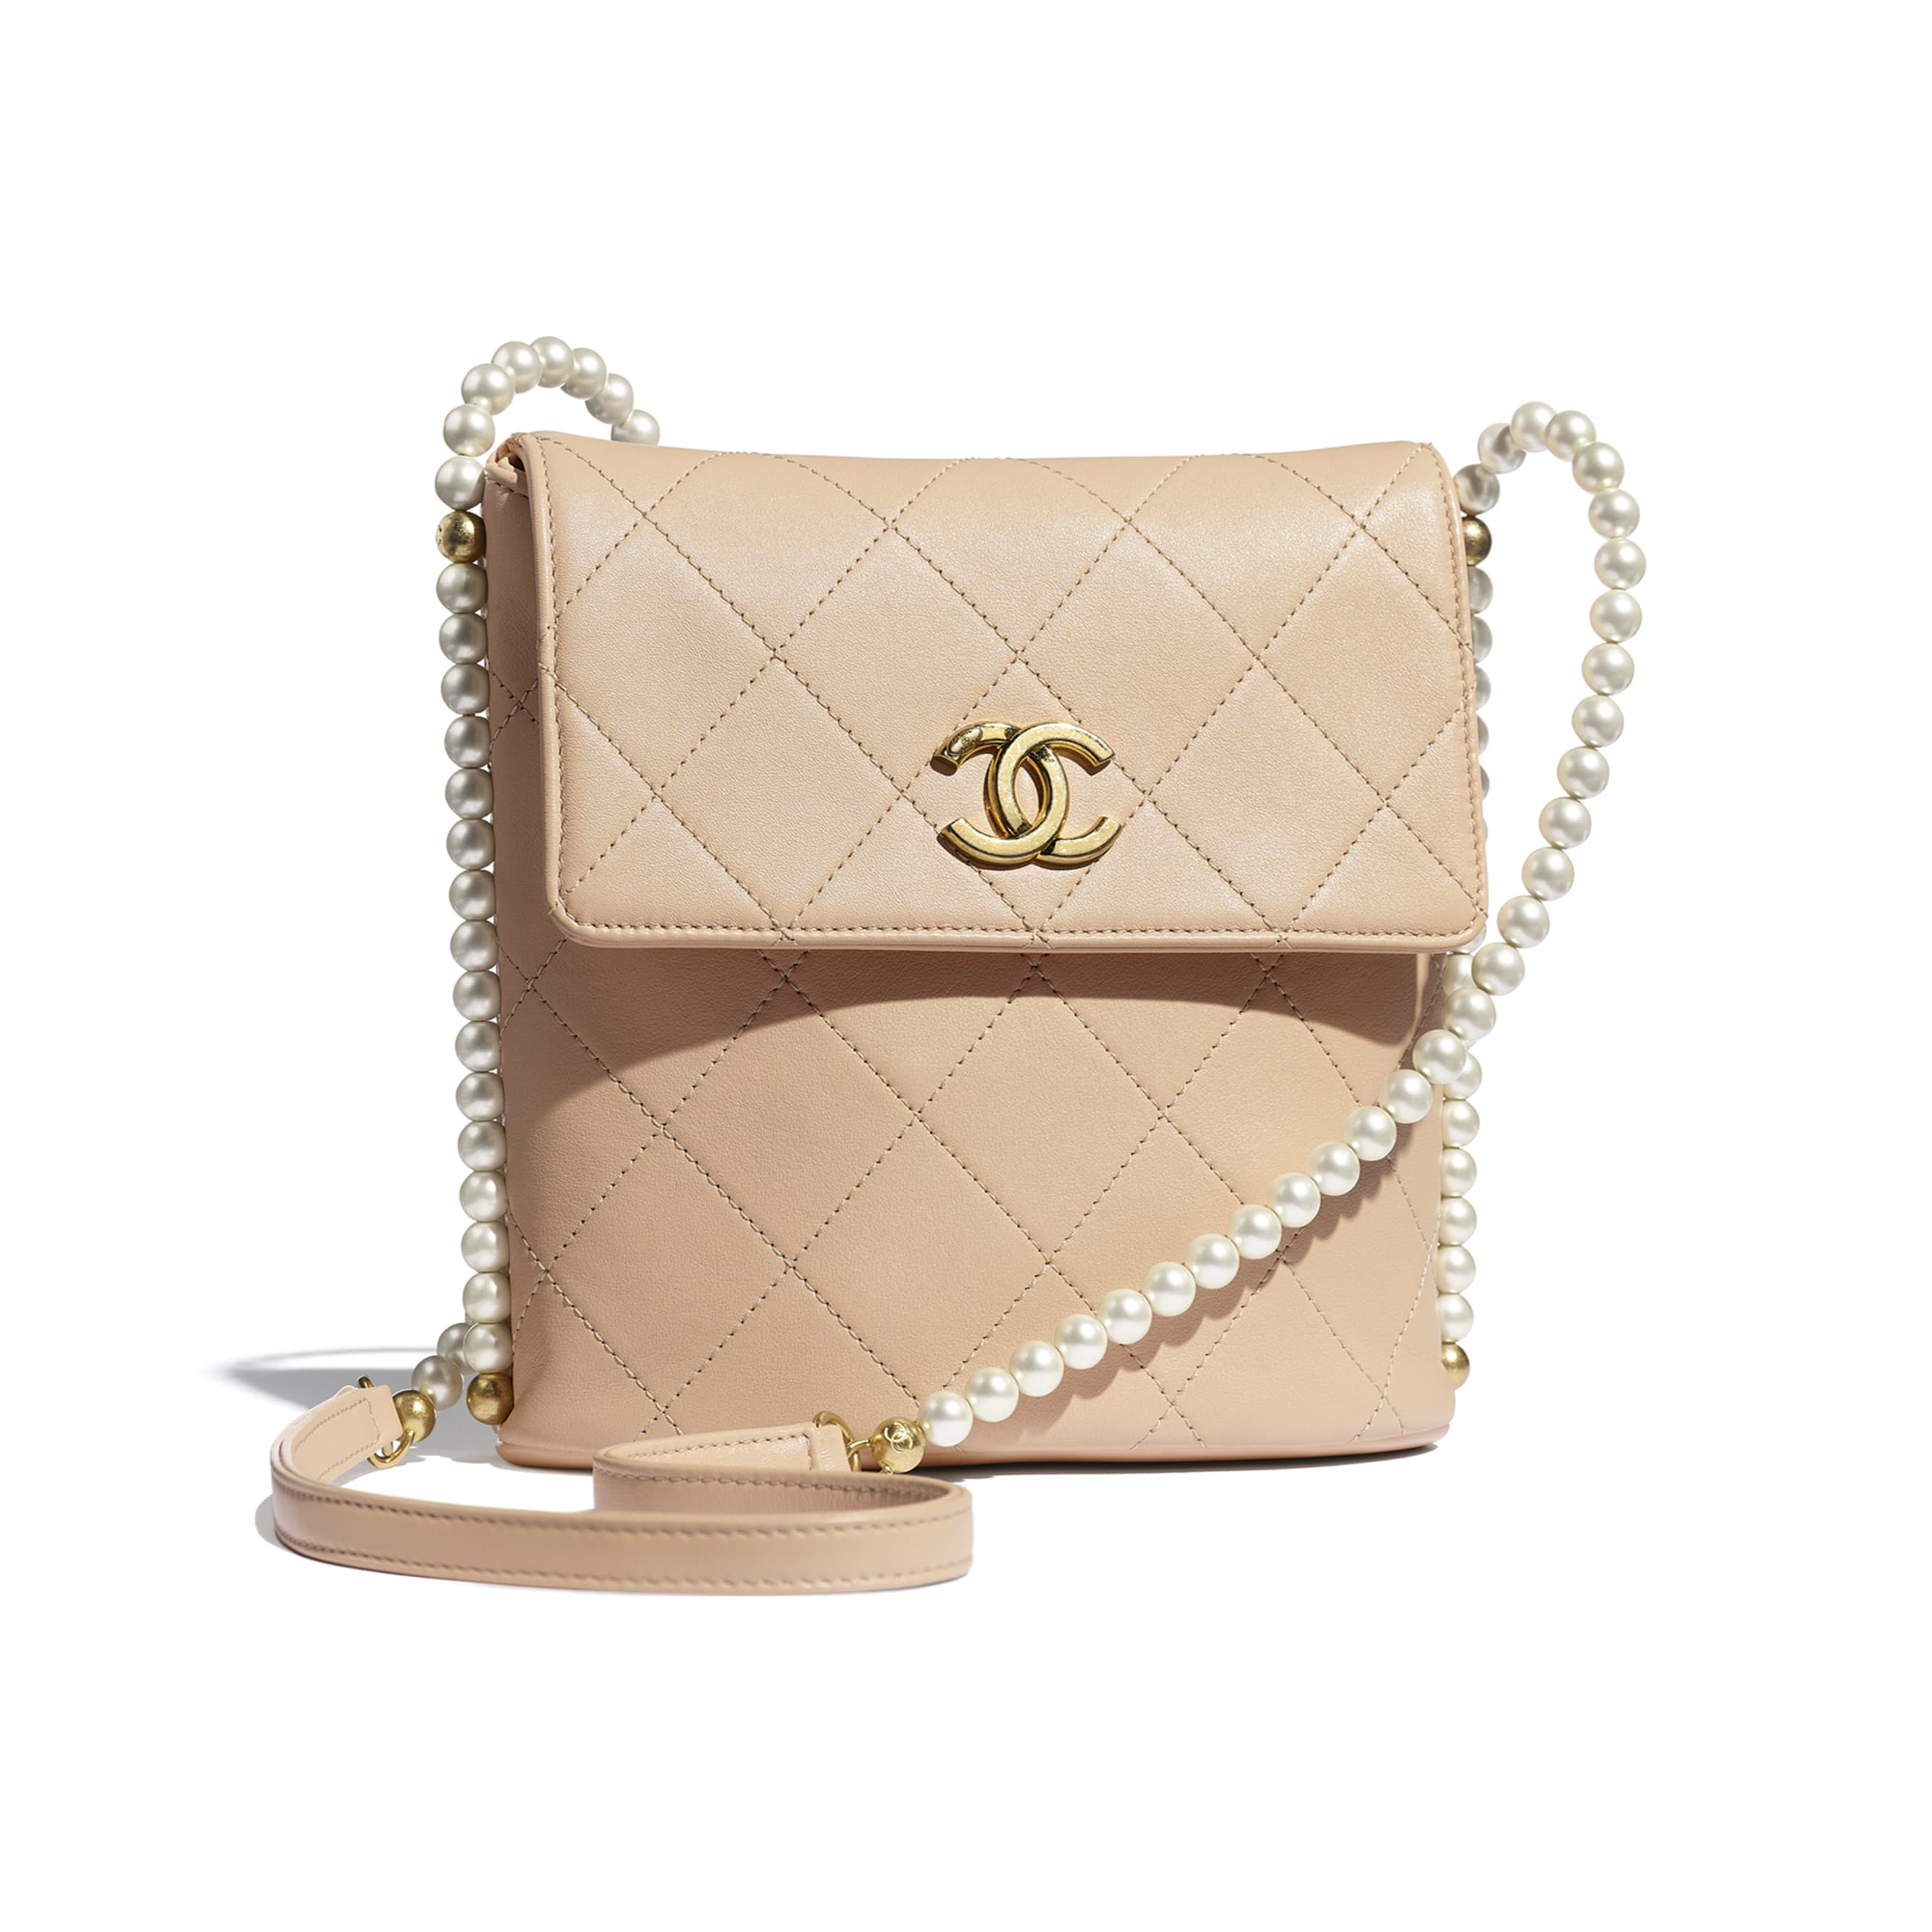 Small Hobo Bag - Beige - Calfskin, Imitation Pearls & Gold-Tone Metal - CHANEL - Default view - see standard sized version